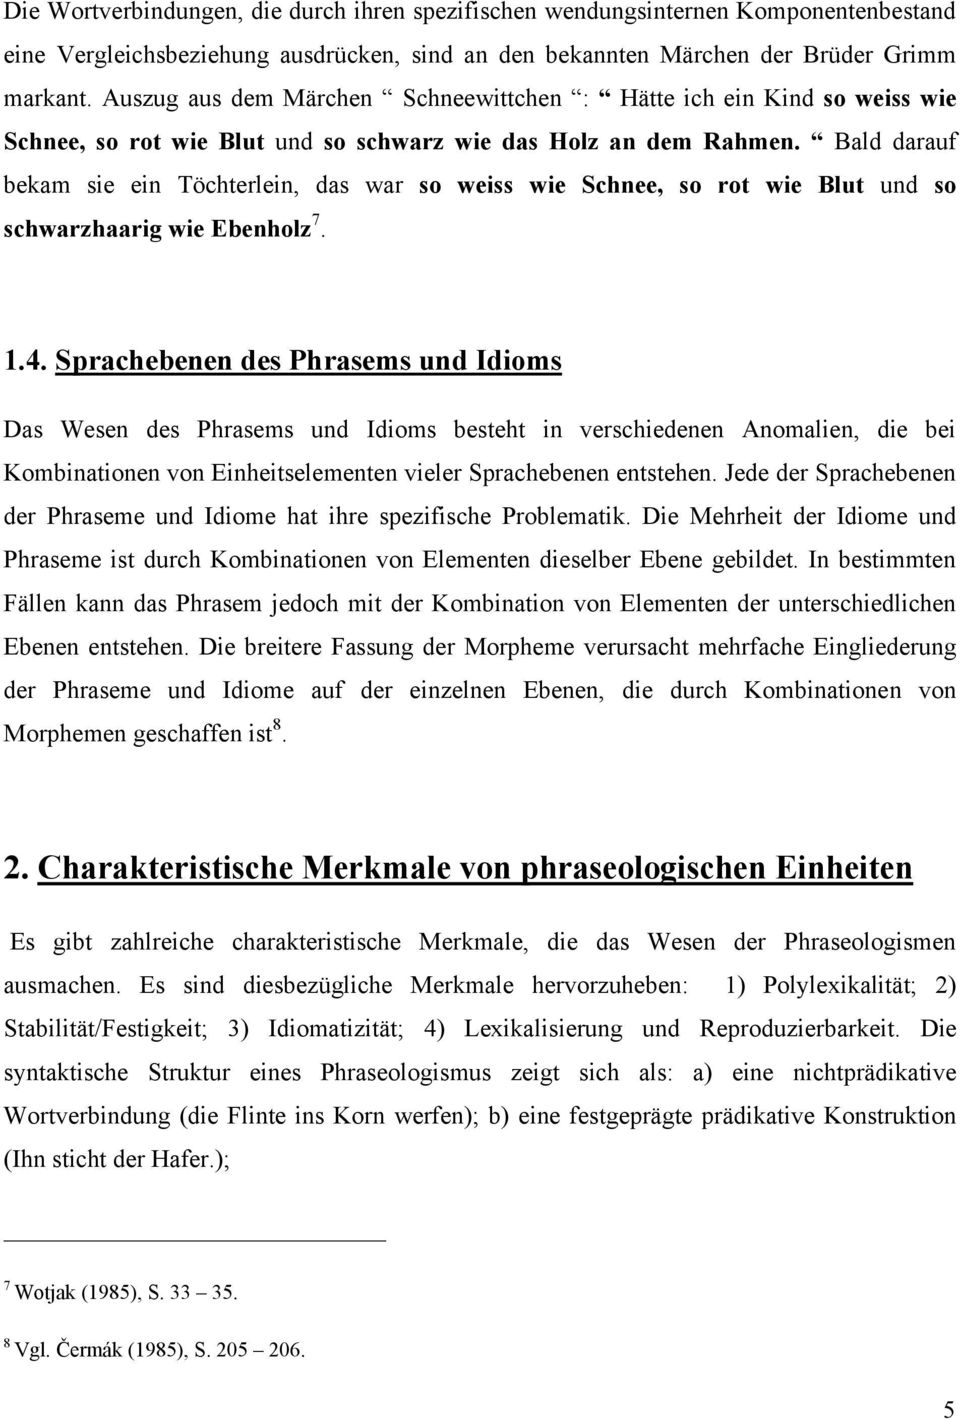 MASARYK-UNIVERSITÄT BACHELORARBEIT - PDF